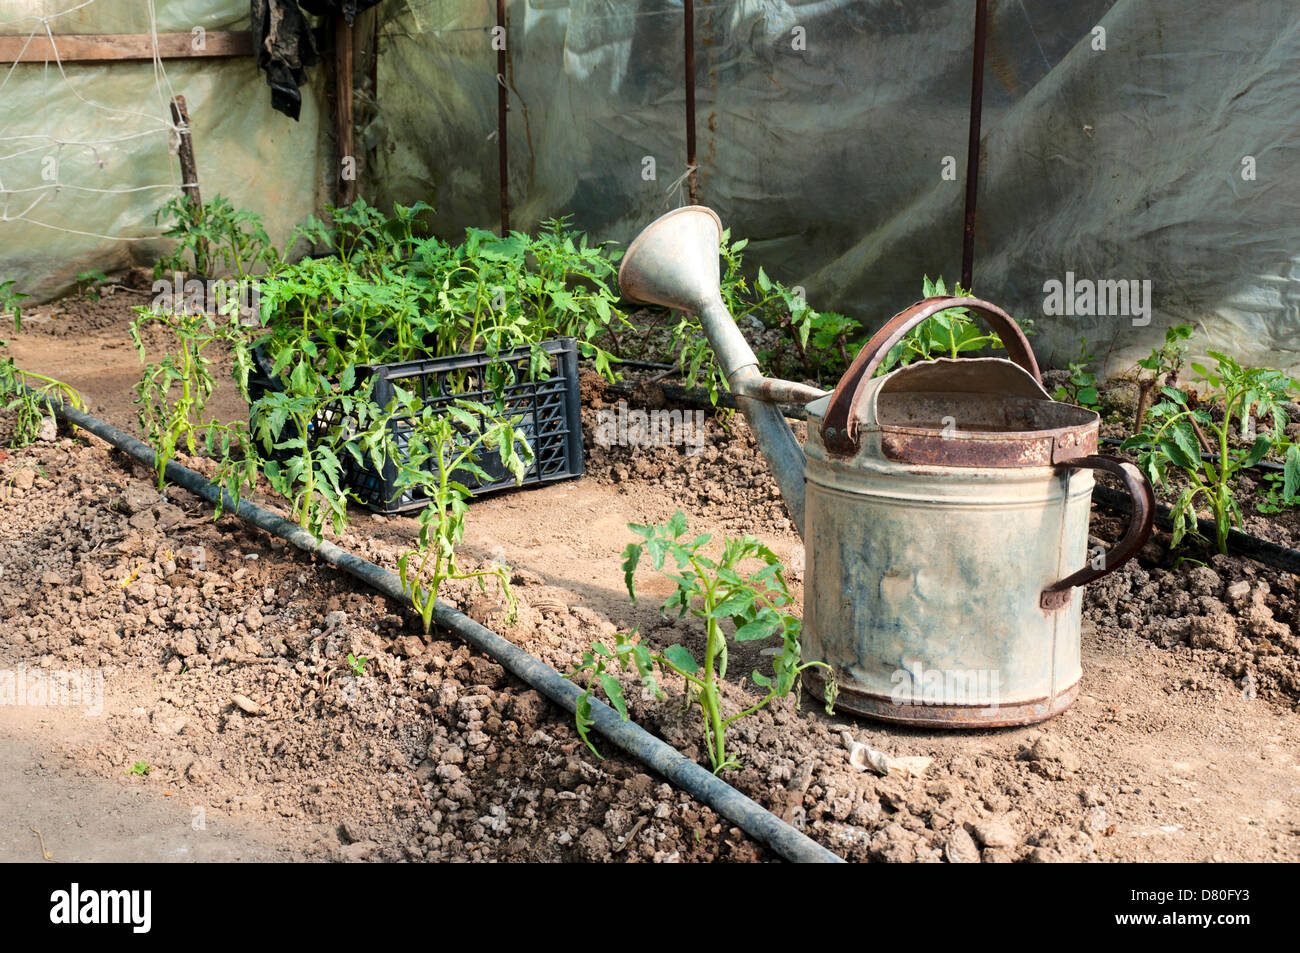 Old water basket in the garden - Stock Image